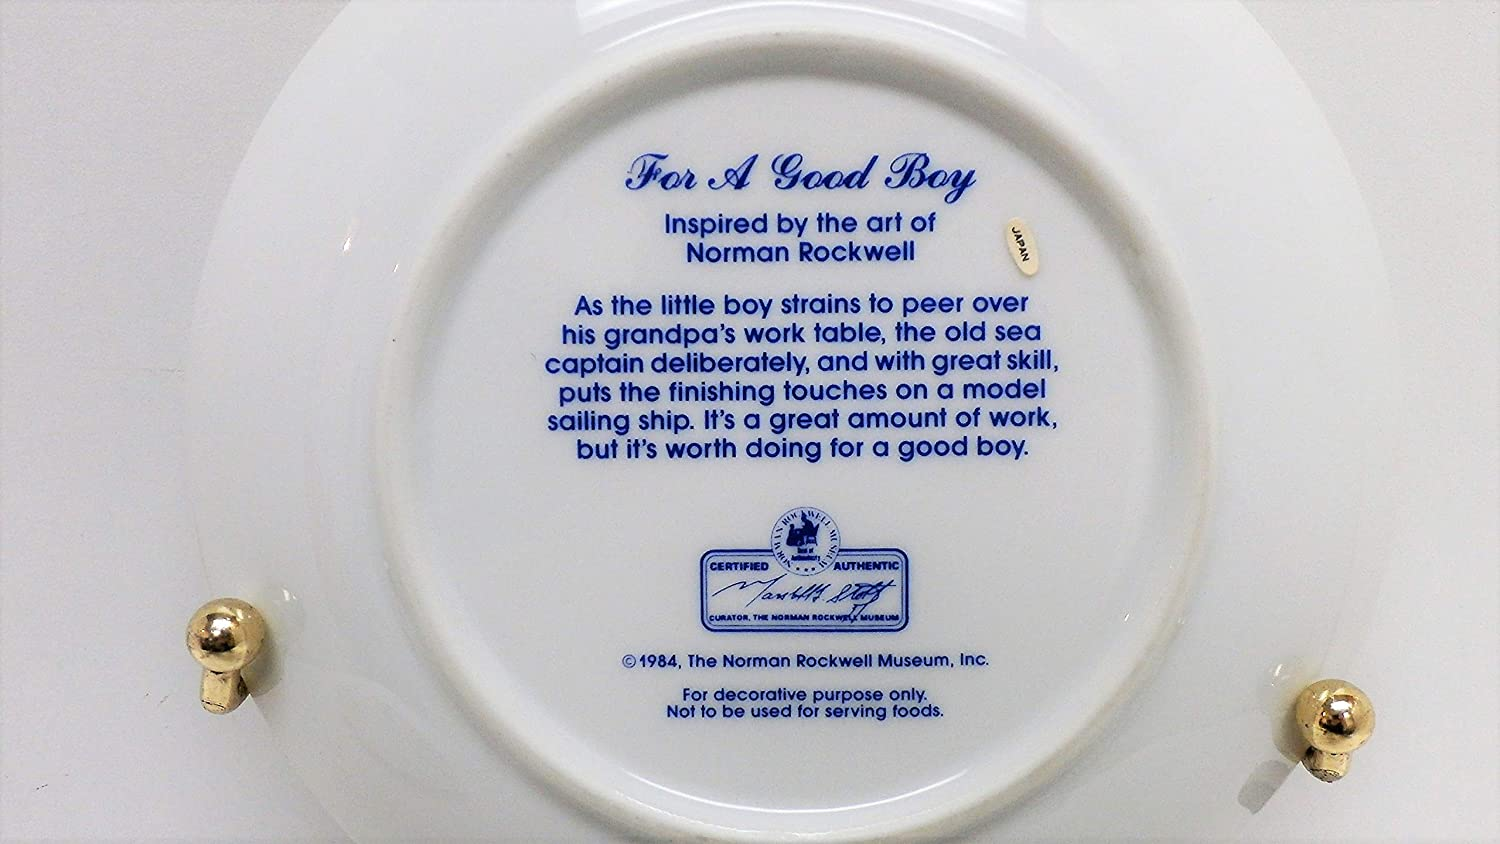 COLLECTOR PLATE FOR A GOOD BOY BY NORMAN ROCKWELL 1984